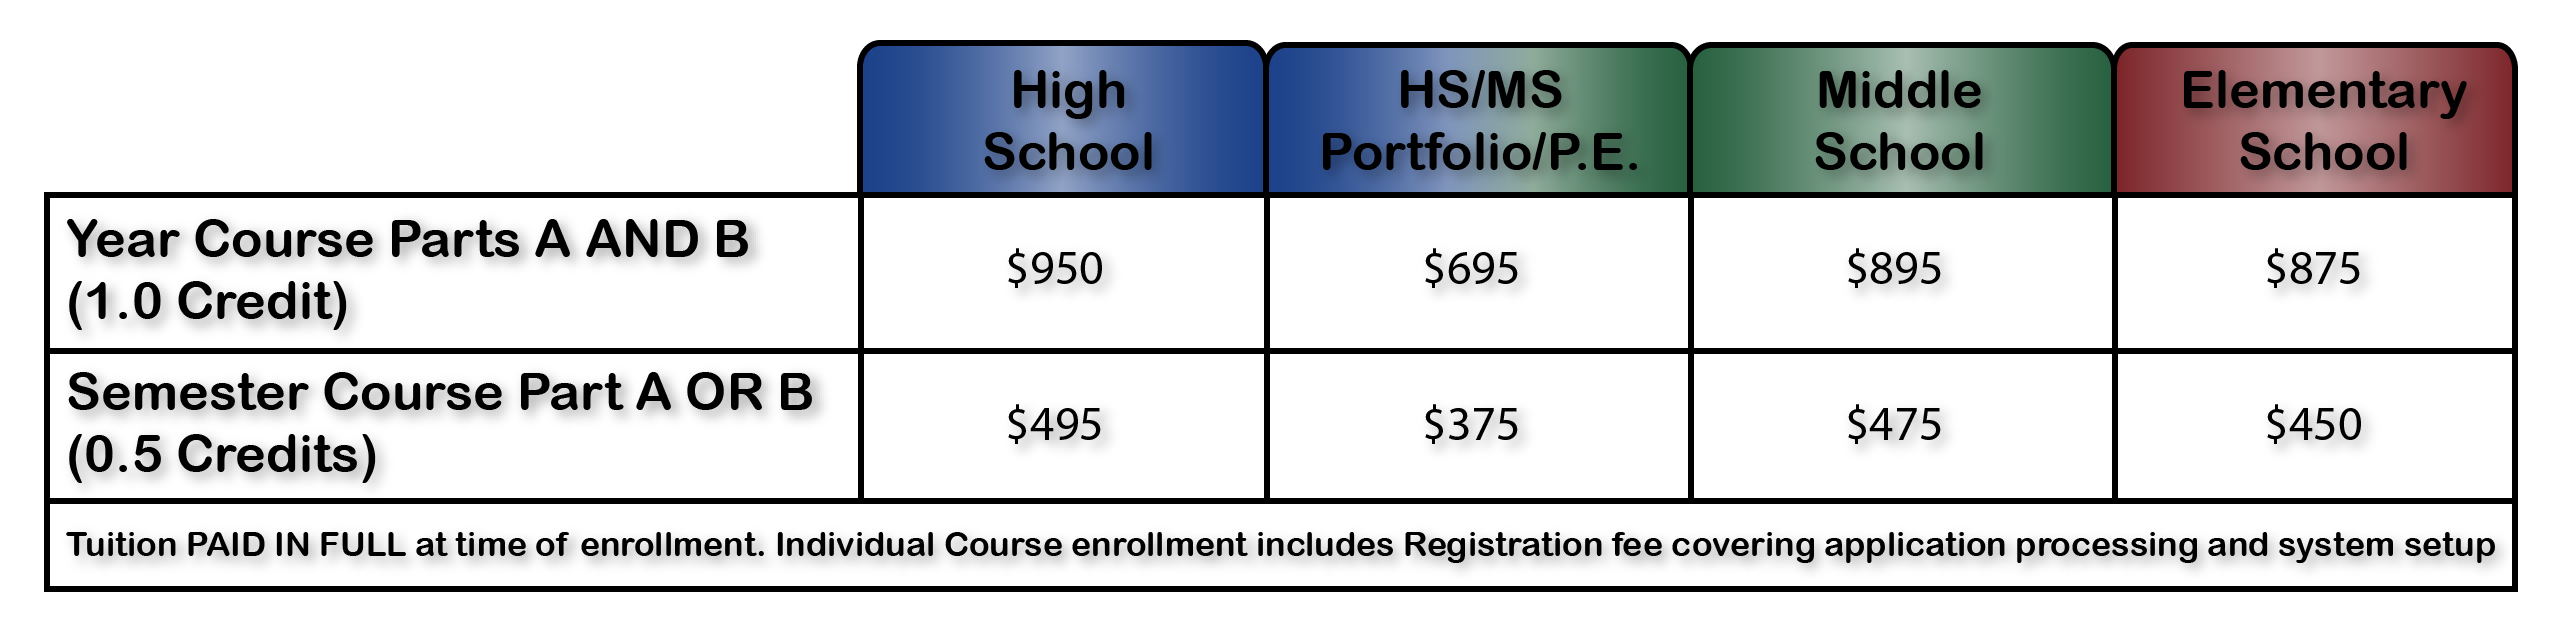 2019 individual course price